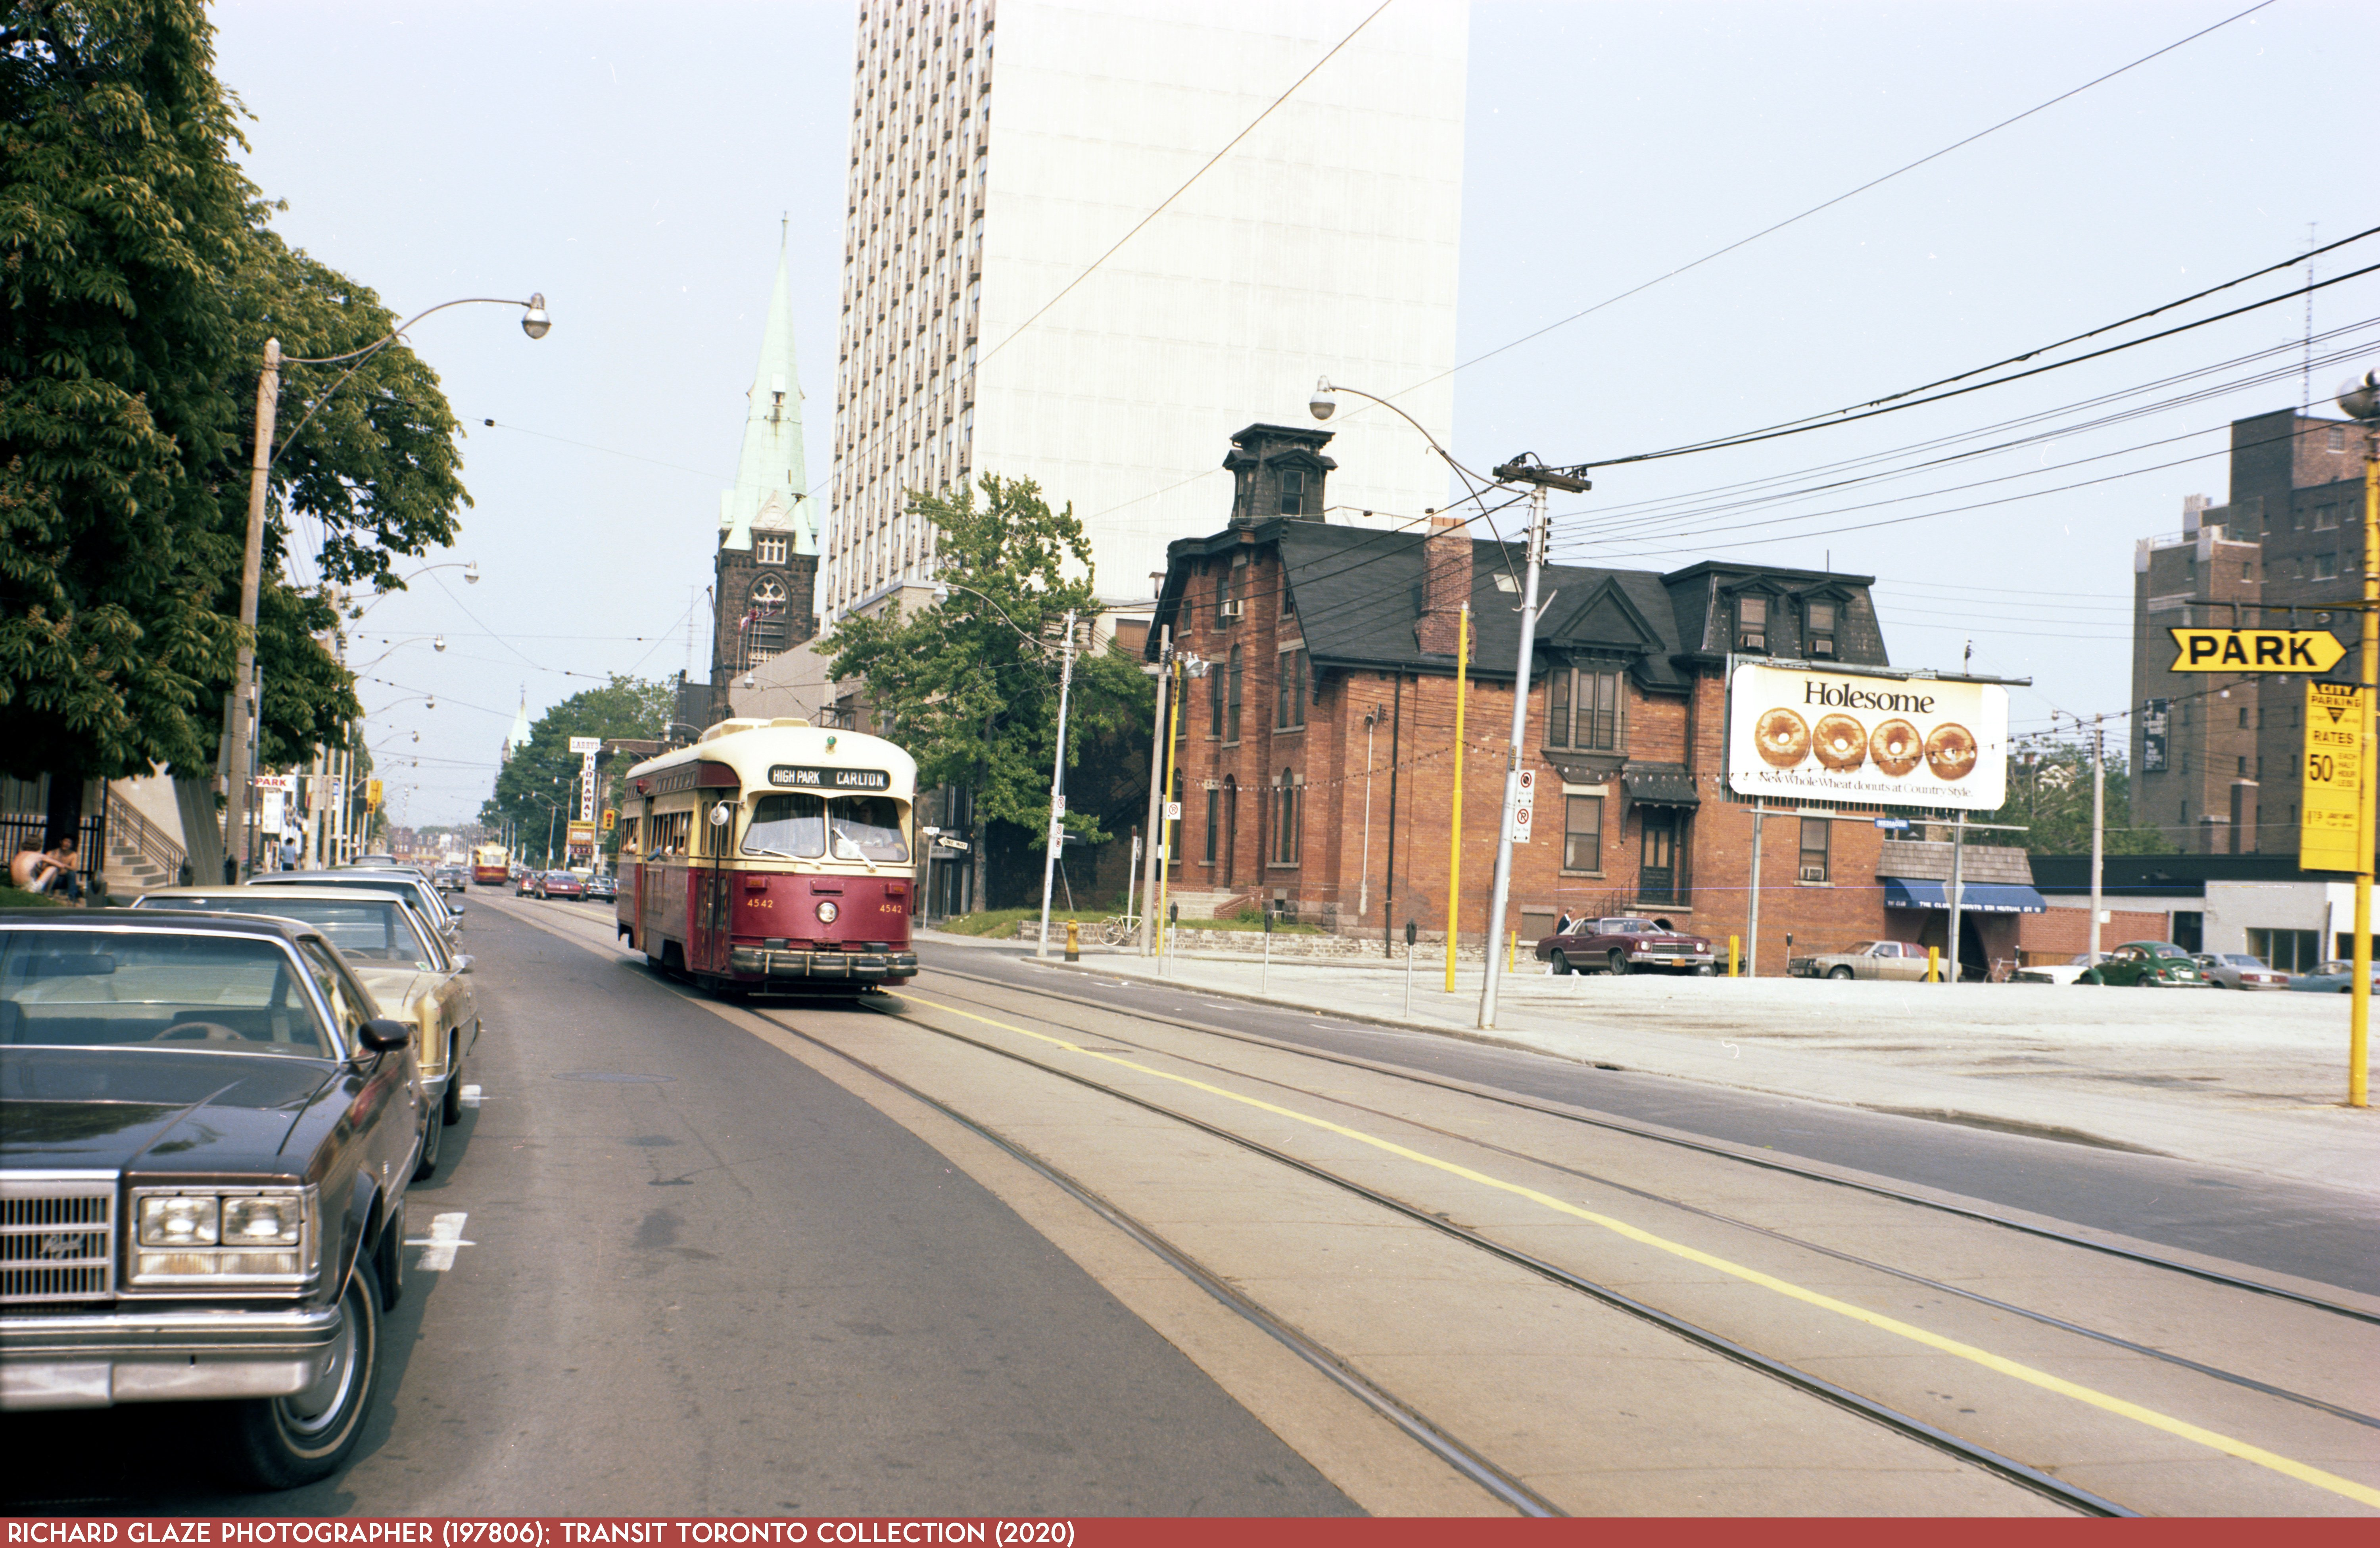 19780600 - 506 Carlton - 4542 WB at Mutual